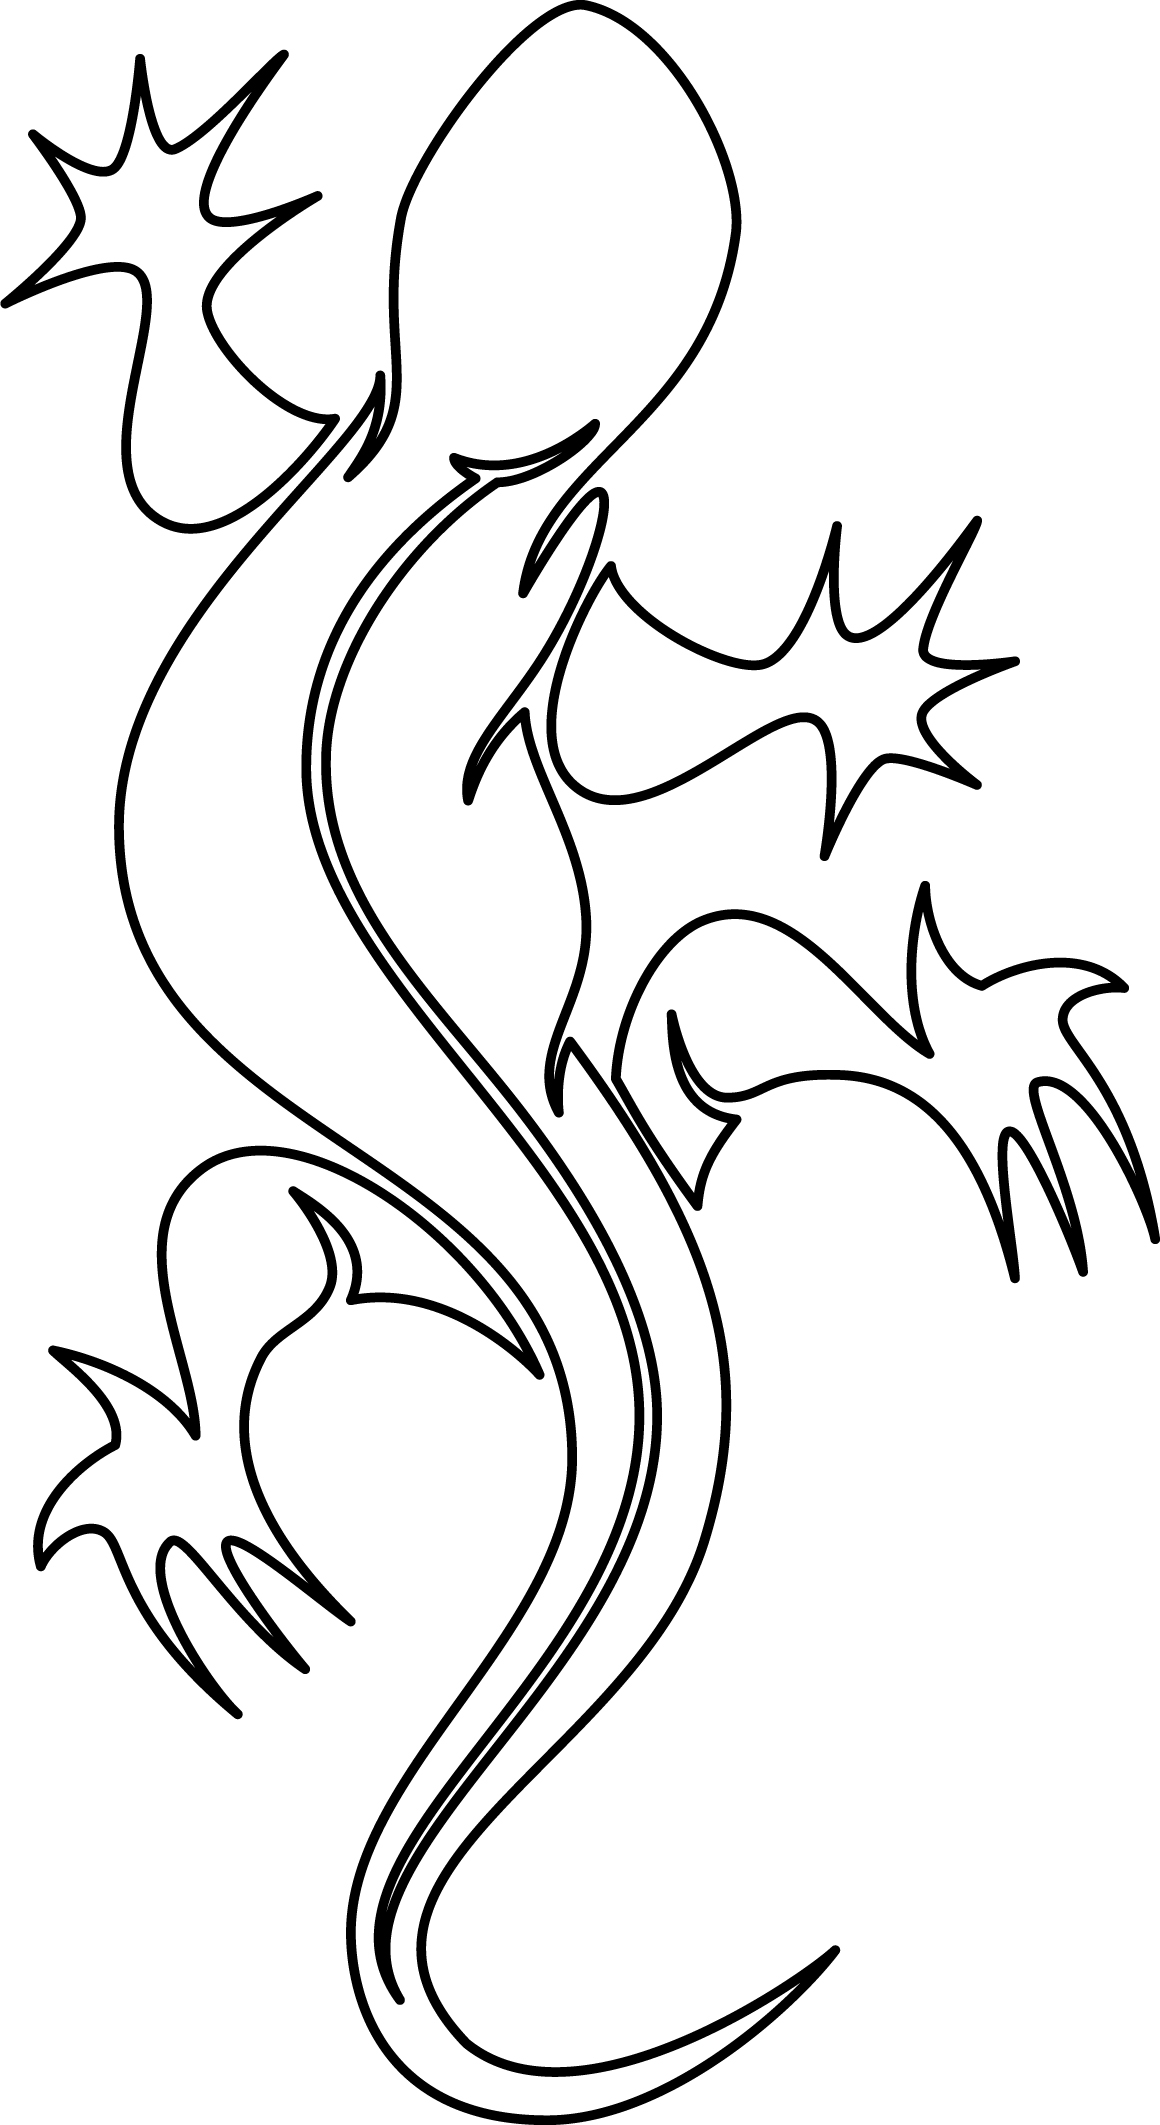 1160x2125 Drawn Lizard Clipart Black And White